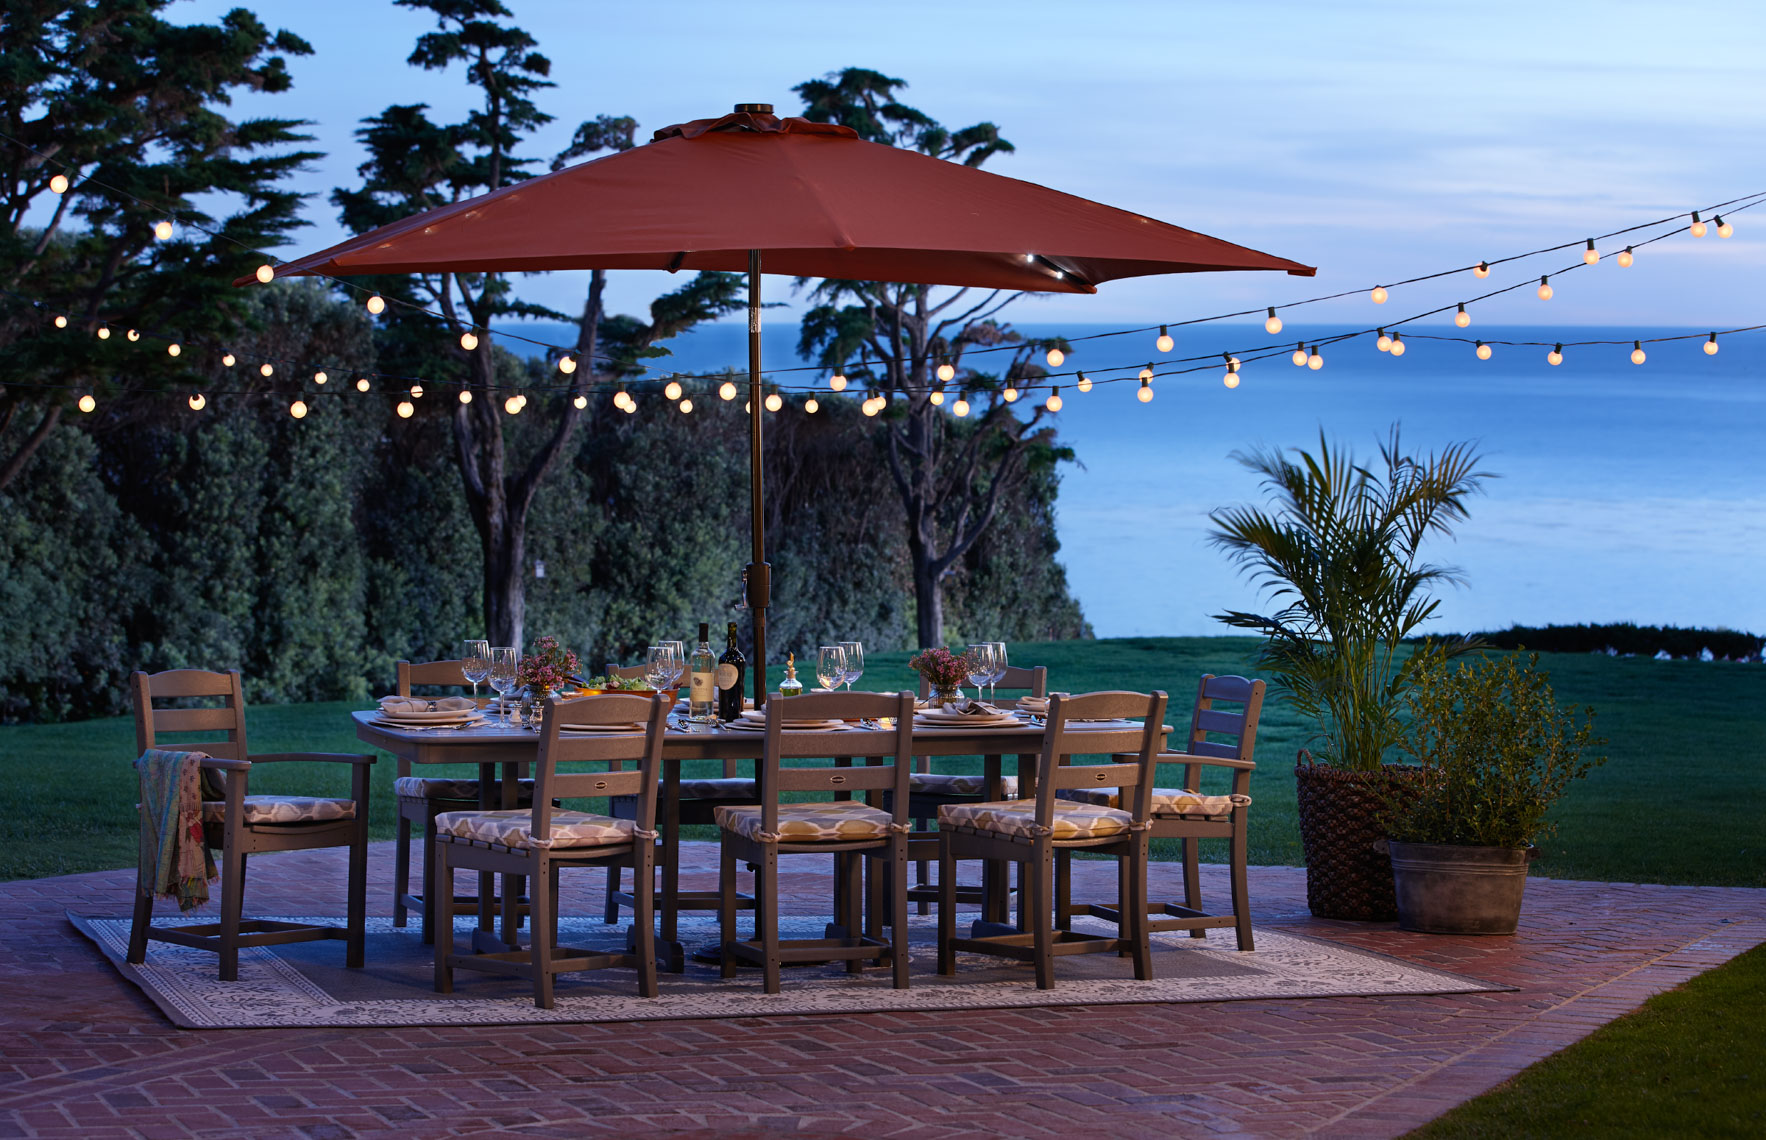 Wood outdoor furniture with red umbrella at dusk on patio by the ocean